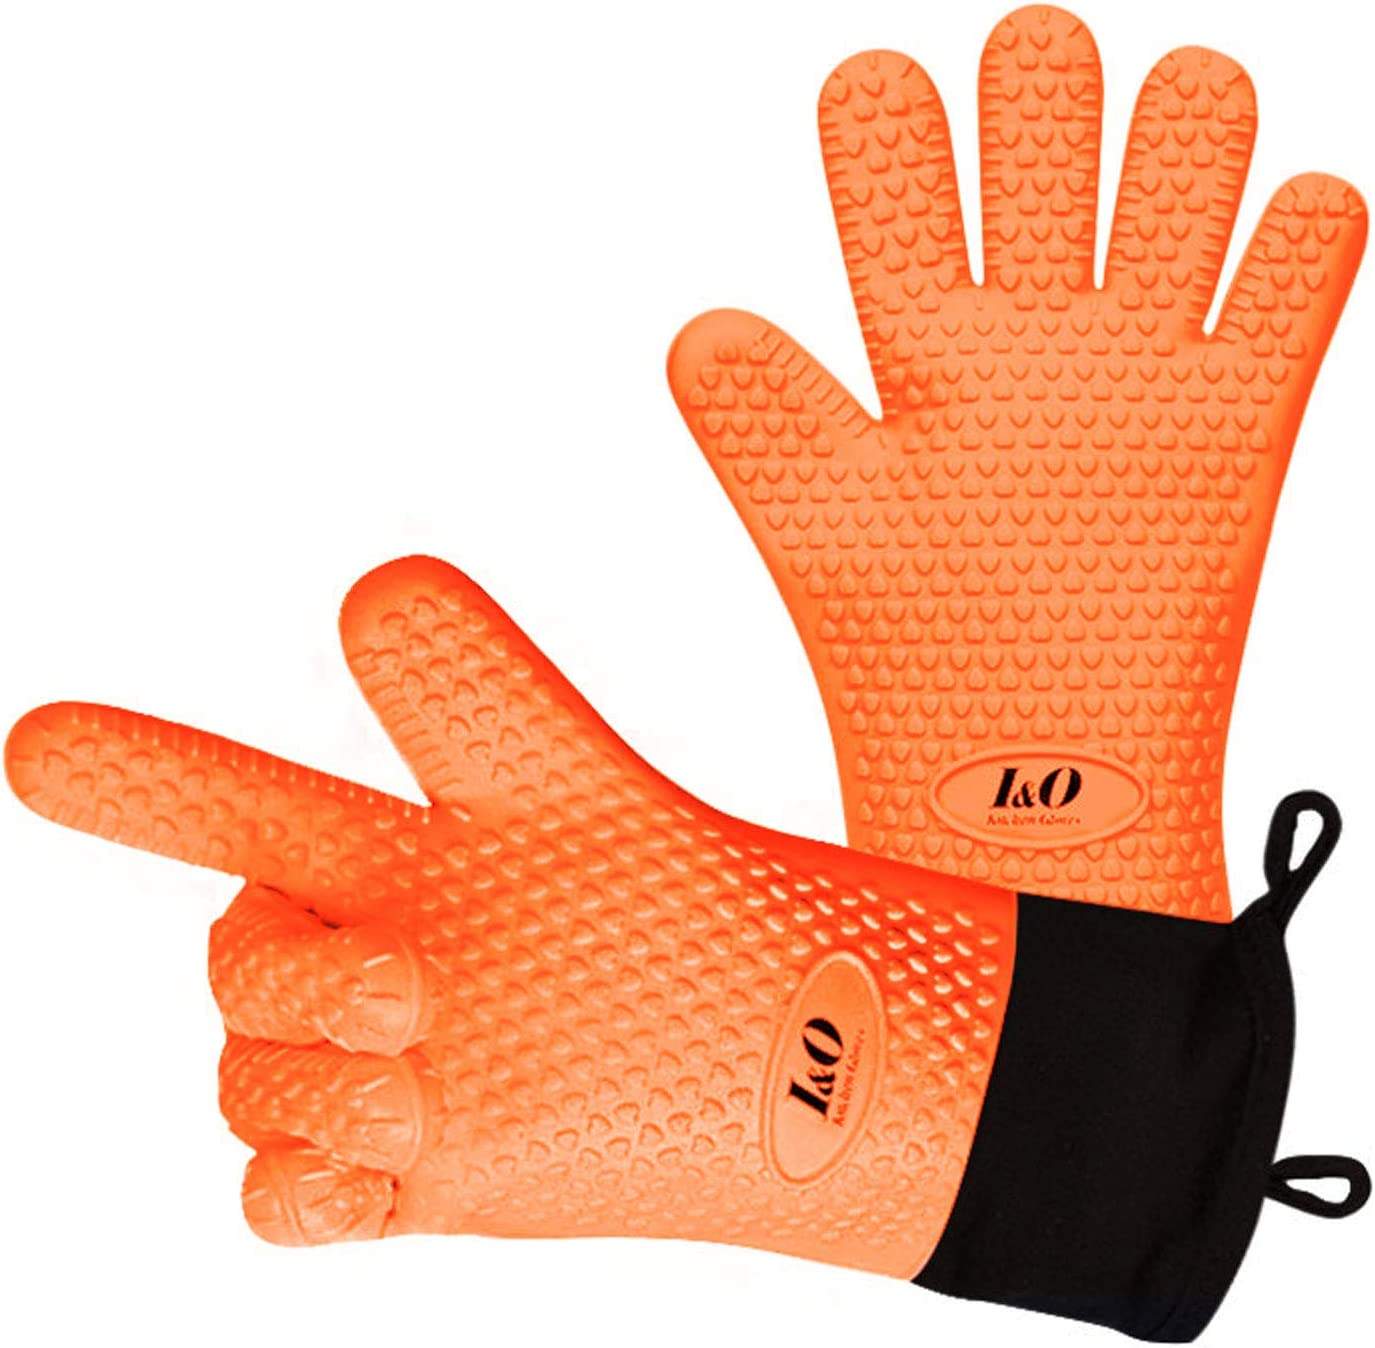 BBQ Gloves Oven Mitts – Heat Resistant Grilling Gloves – Silicone Cooking Gloves – ColorfulLong Waterproof Mitts – Non-slip Silicone Gloves – Double Layer Design – Multipurpose Oven Mitts (Orange)